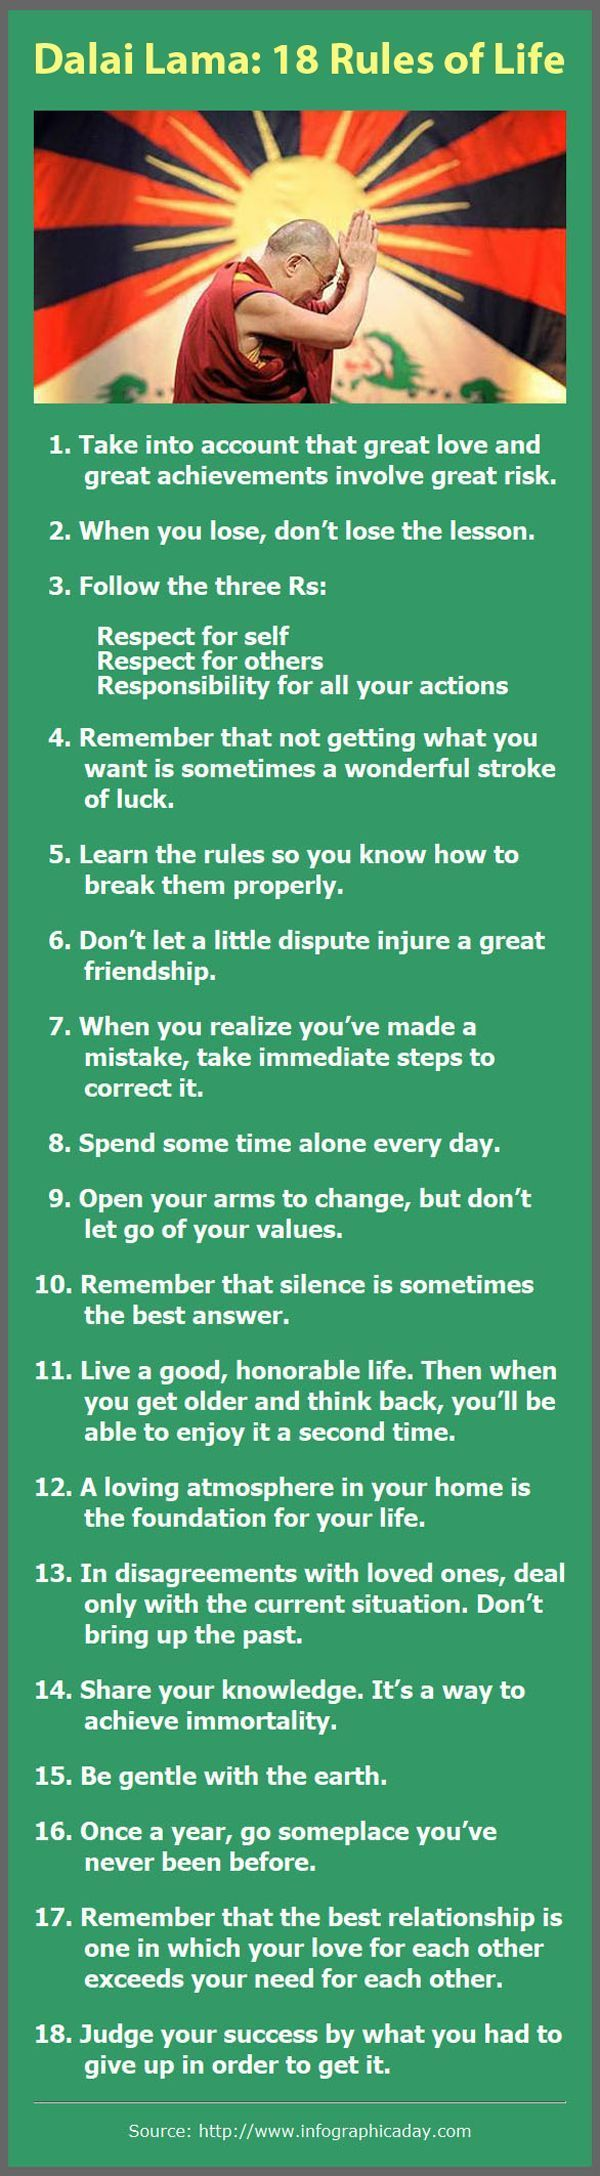 Follow Dalai Lama's rules to have a better life.